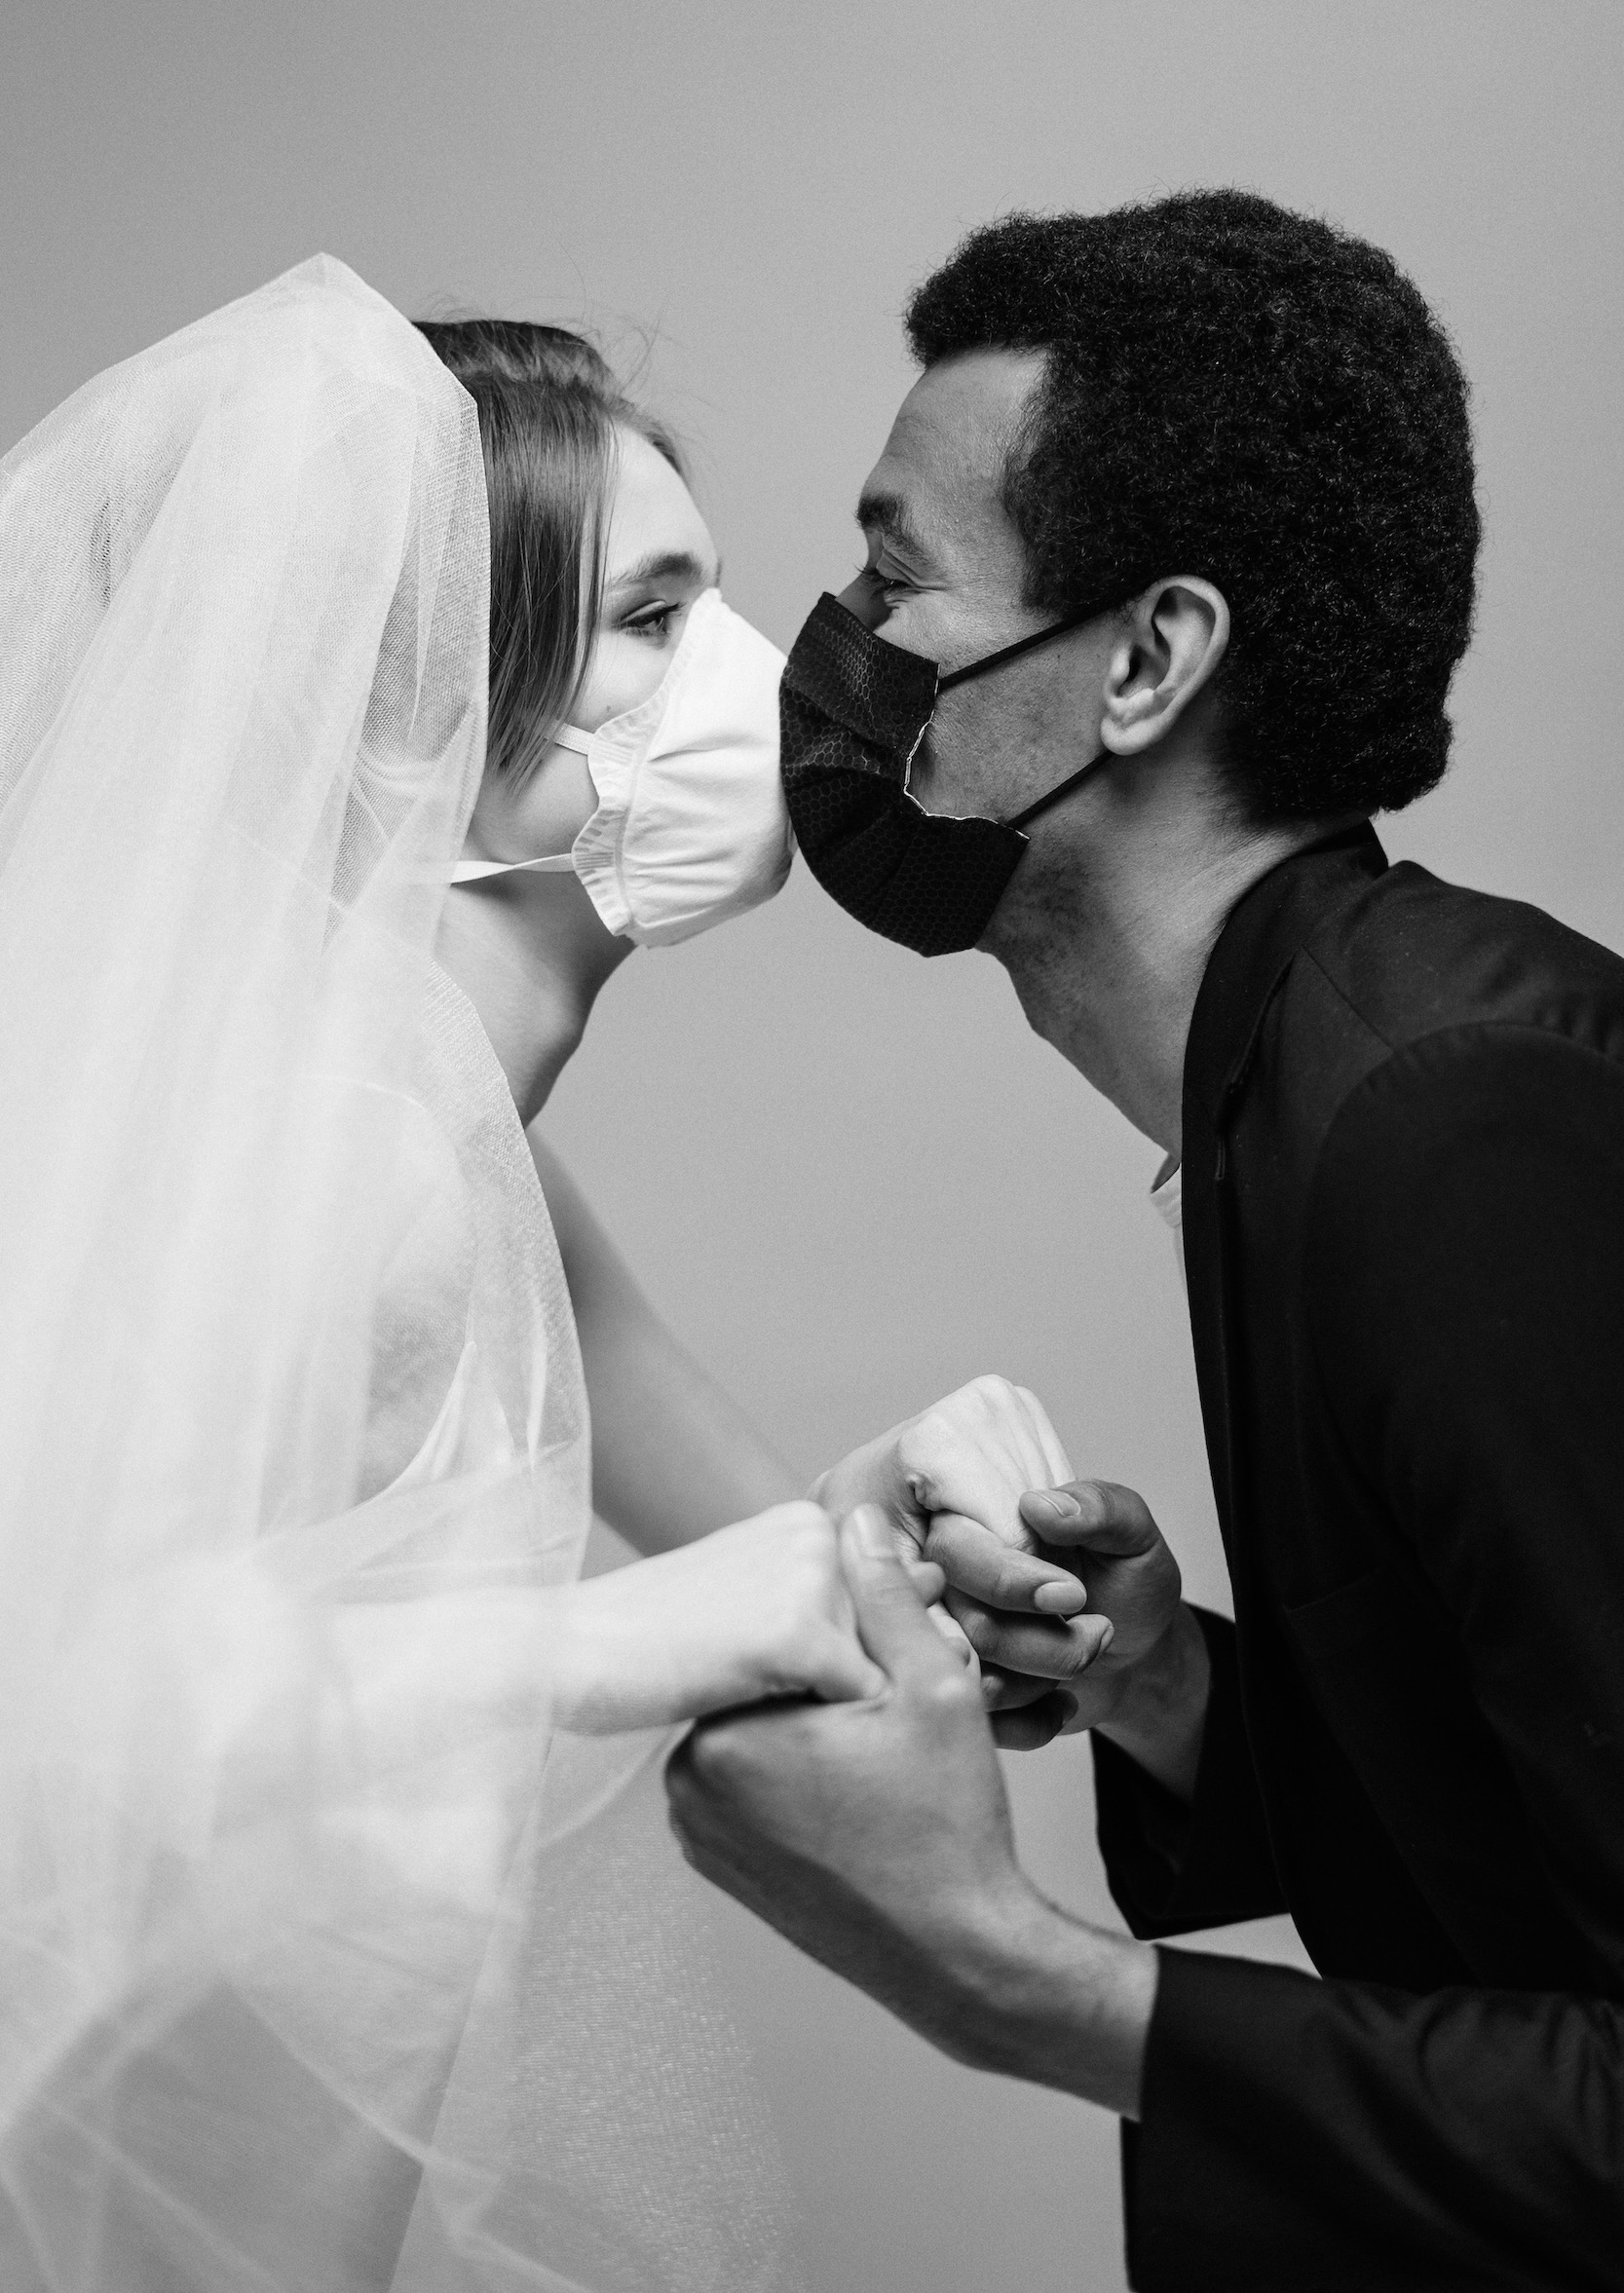 5 Tips On Wedding Planning During The COVID-19 Pandemic